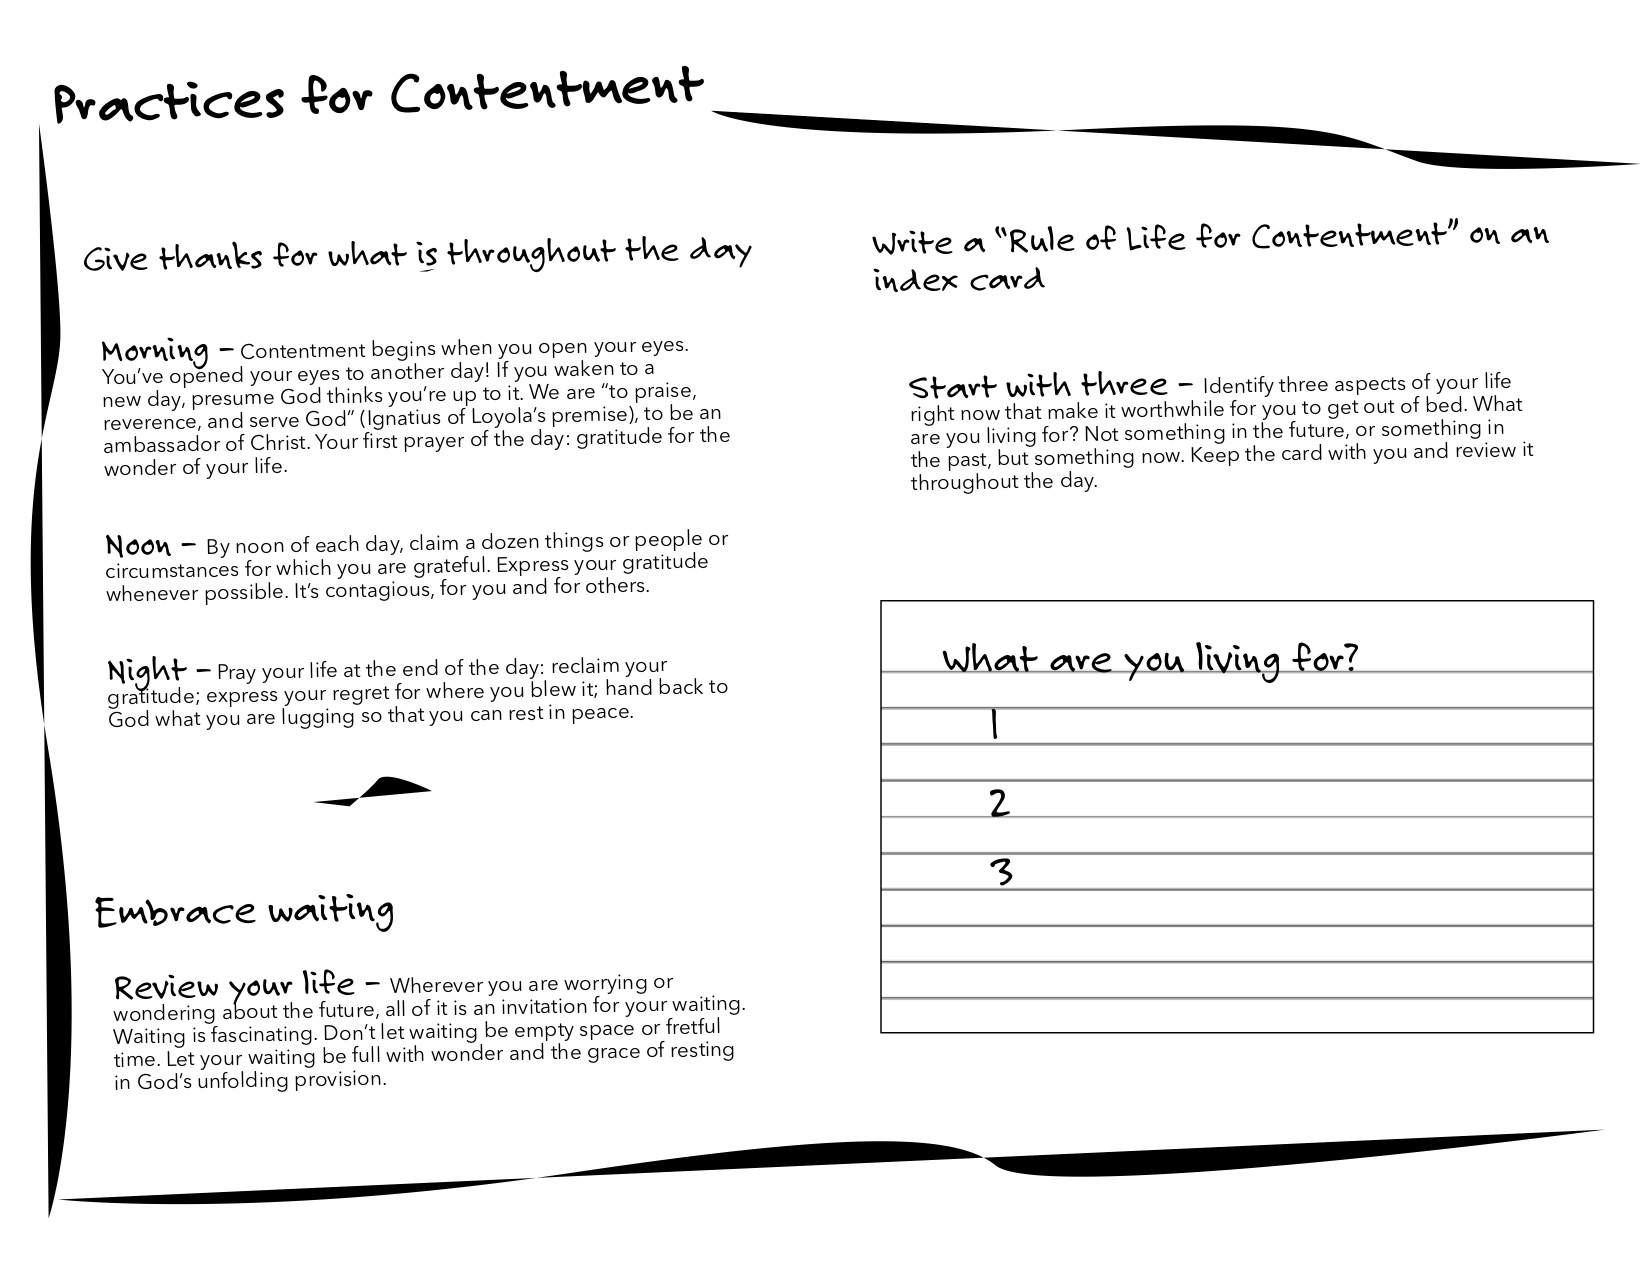 Contentment_Exercise